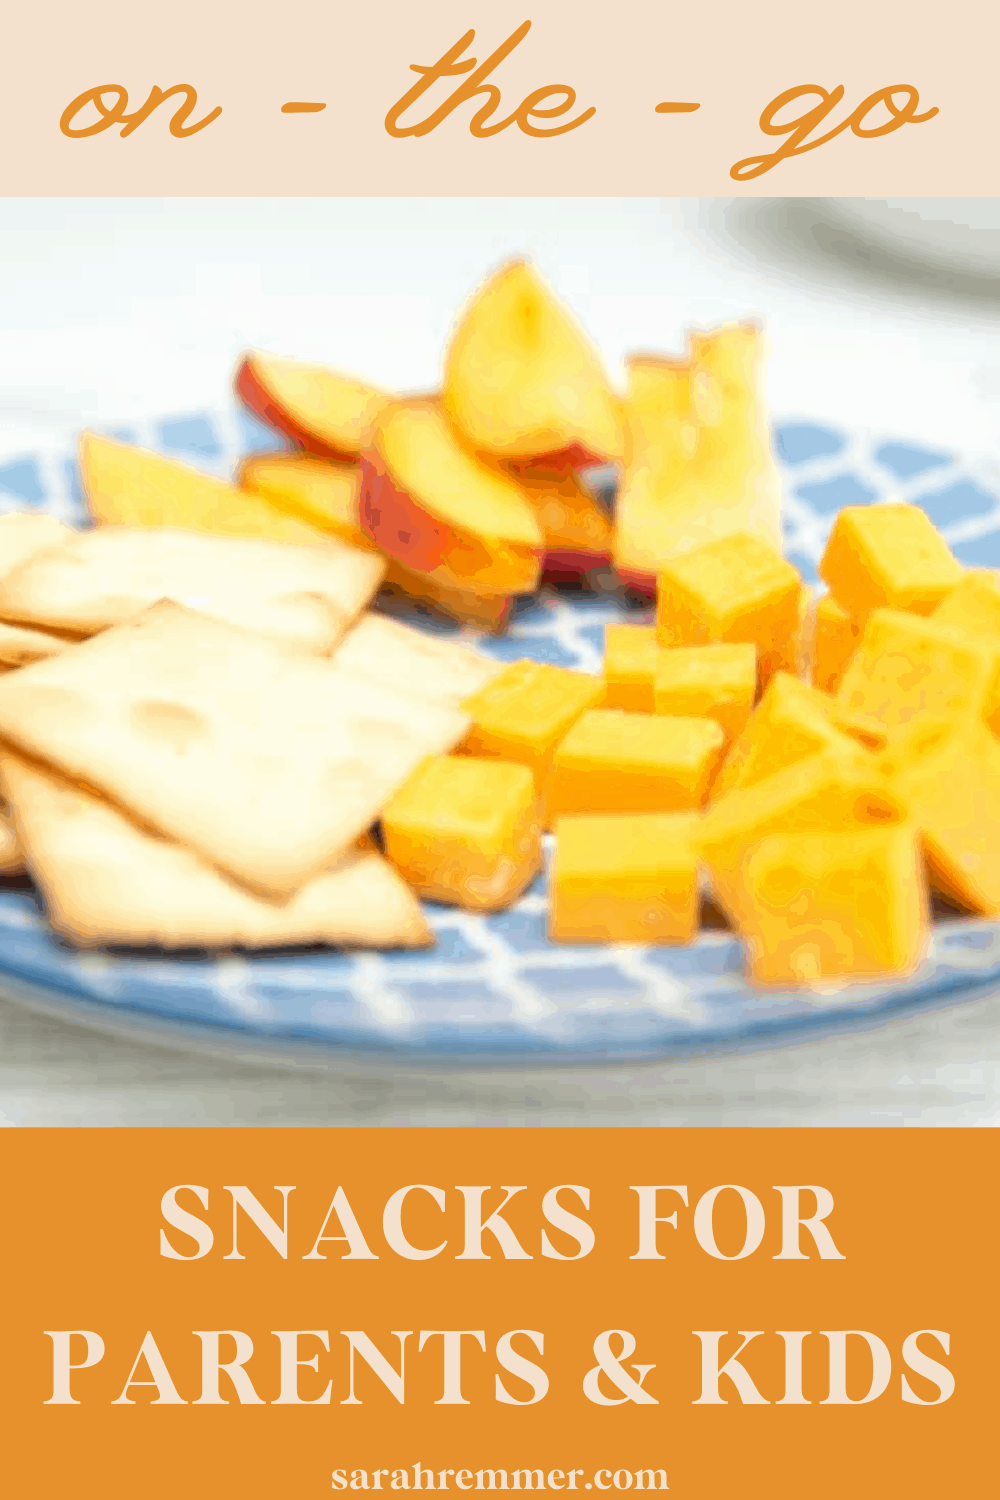 I am an on-the-go Mom, and my little guy is right along with me every day! Before we take off, I always make sure that we are well equipped with yummy snacks. Here are my on-the-go snacks for parents and kids!